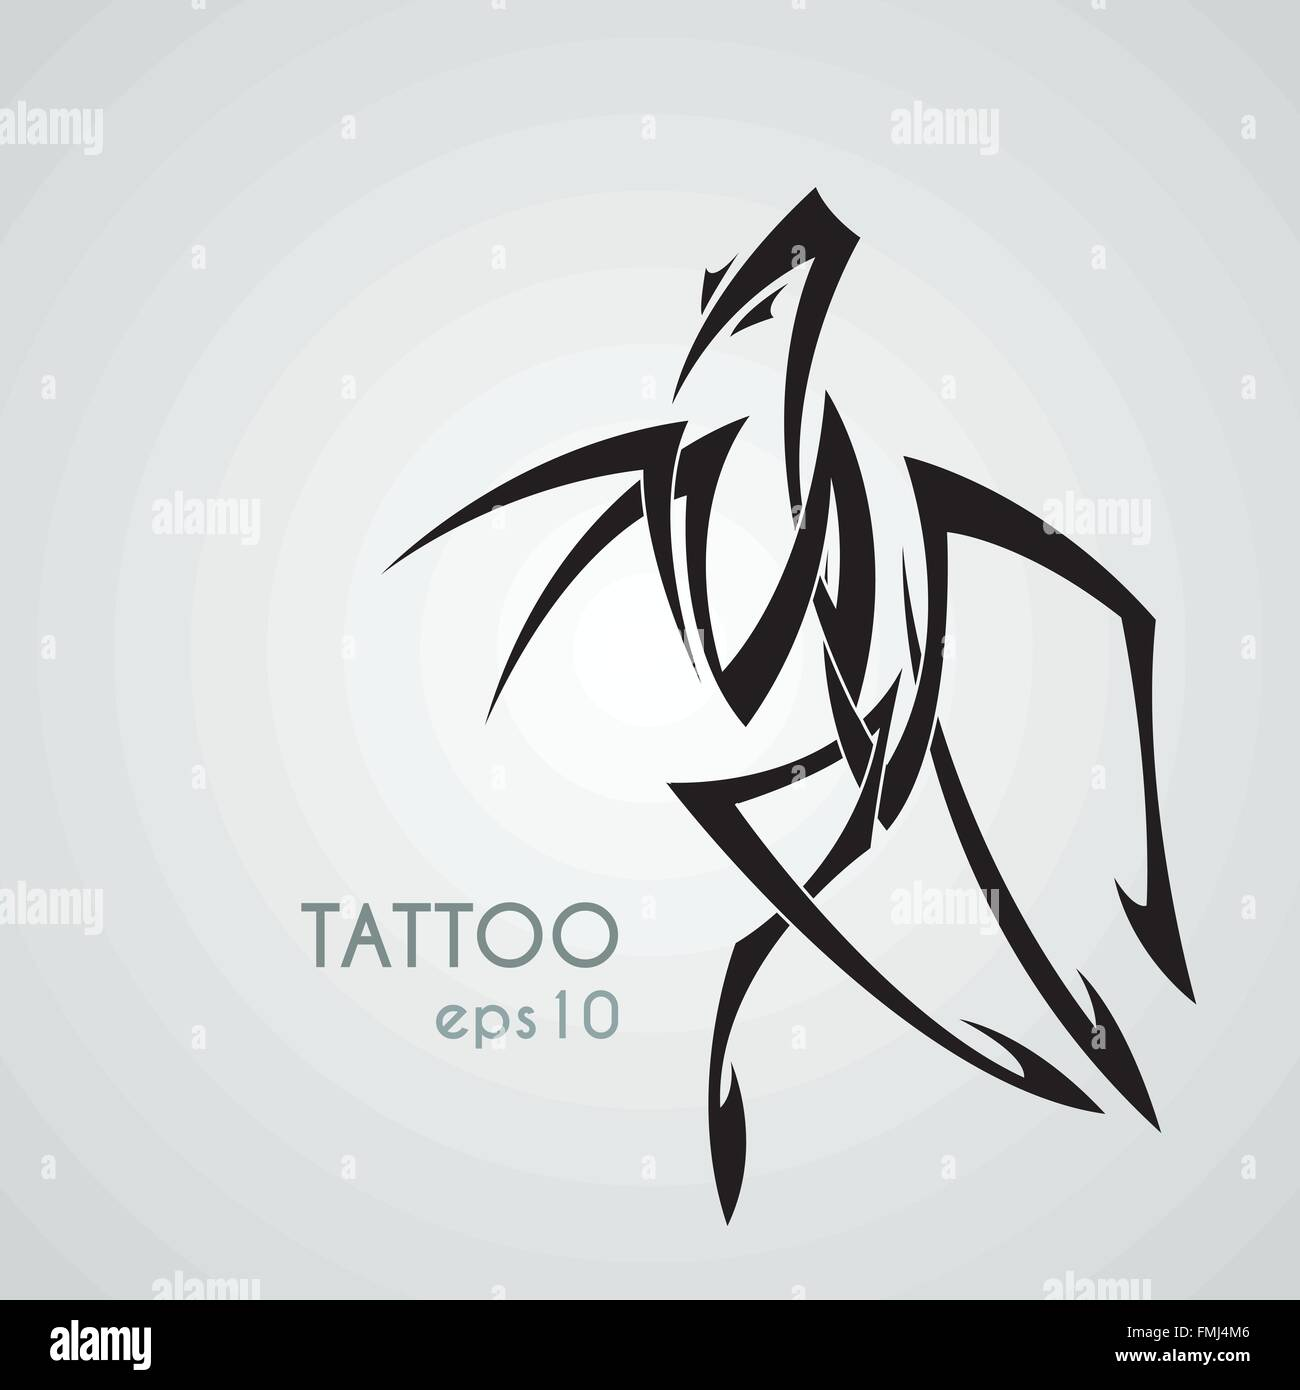 Vector Image Of A Praying Mantis Style Tribal Tattoo Stock Vector